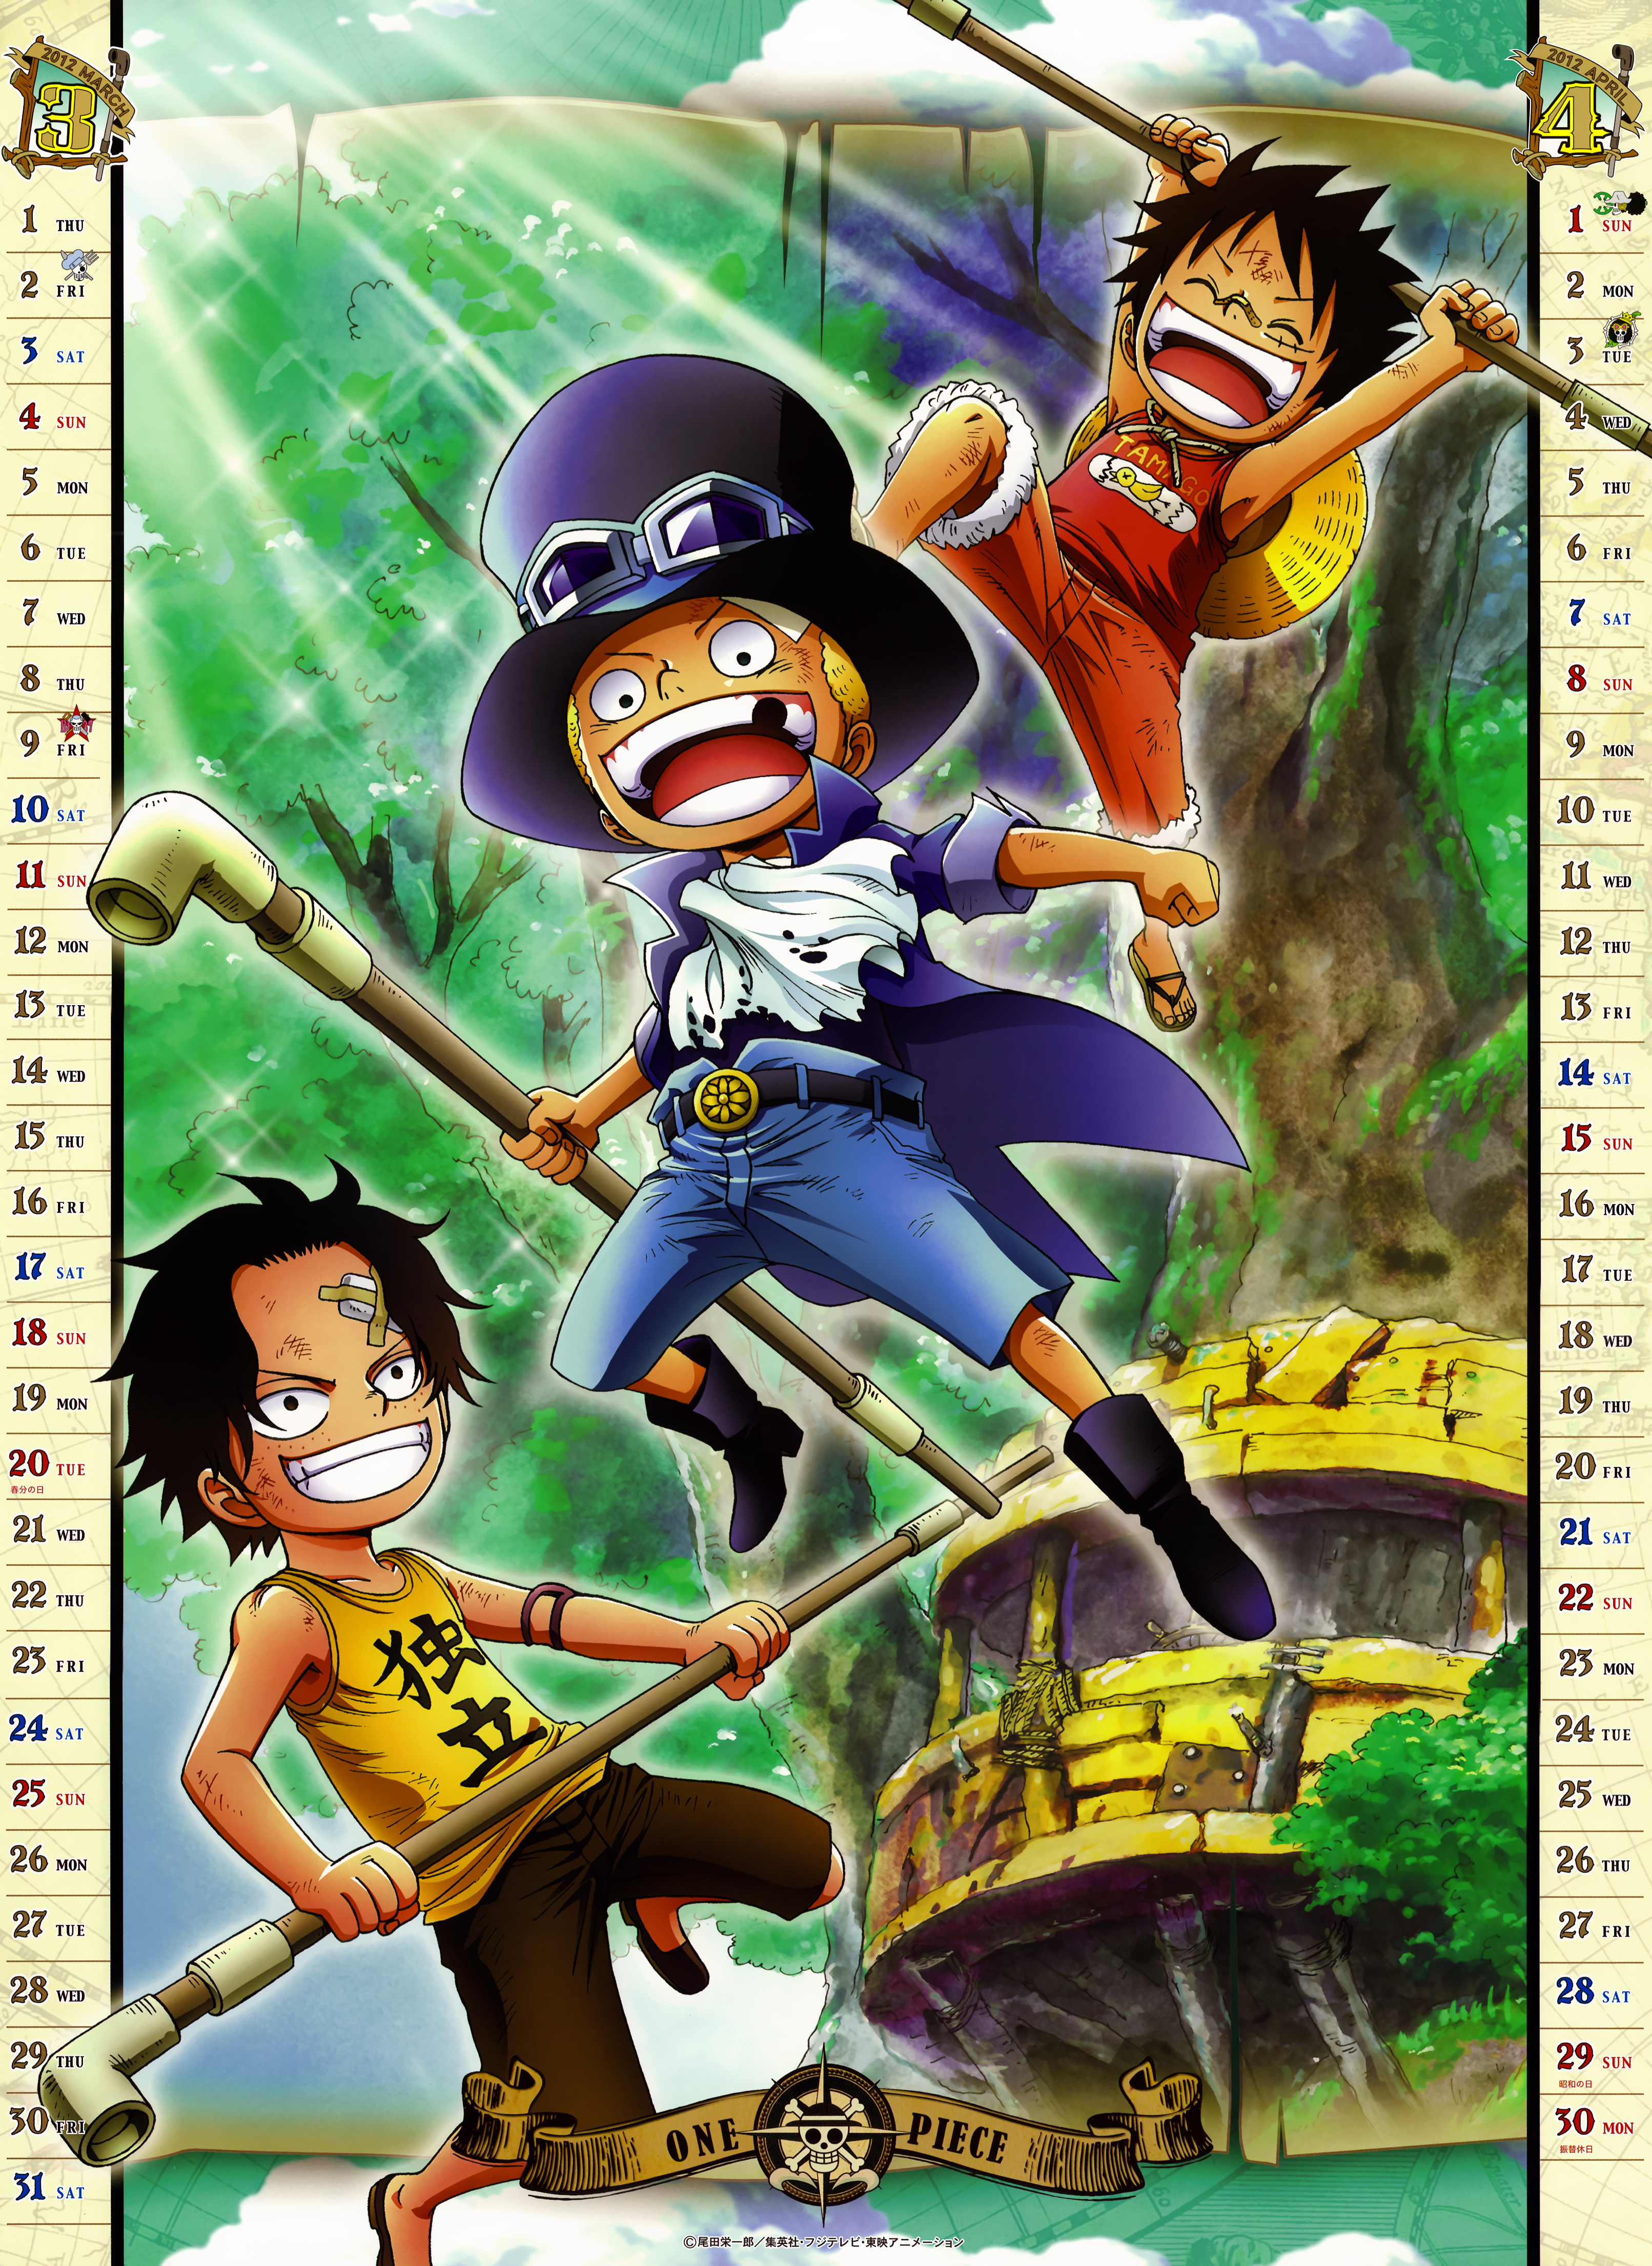 03-04 Little Sabo, Ace, Luffy (One Piece 2012 Calendar)